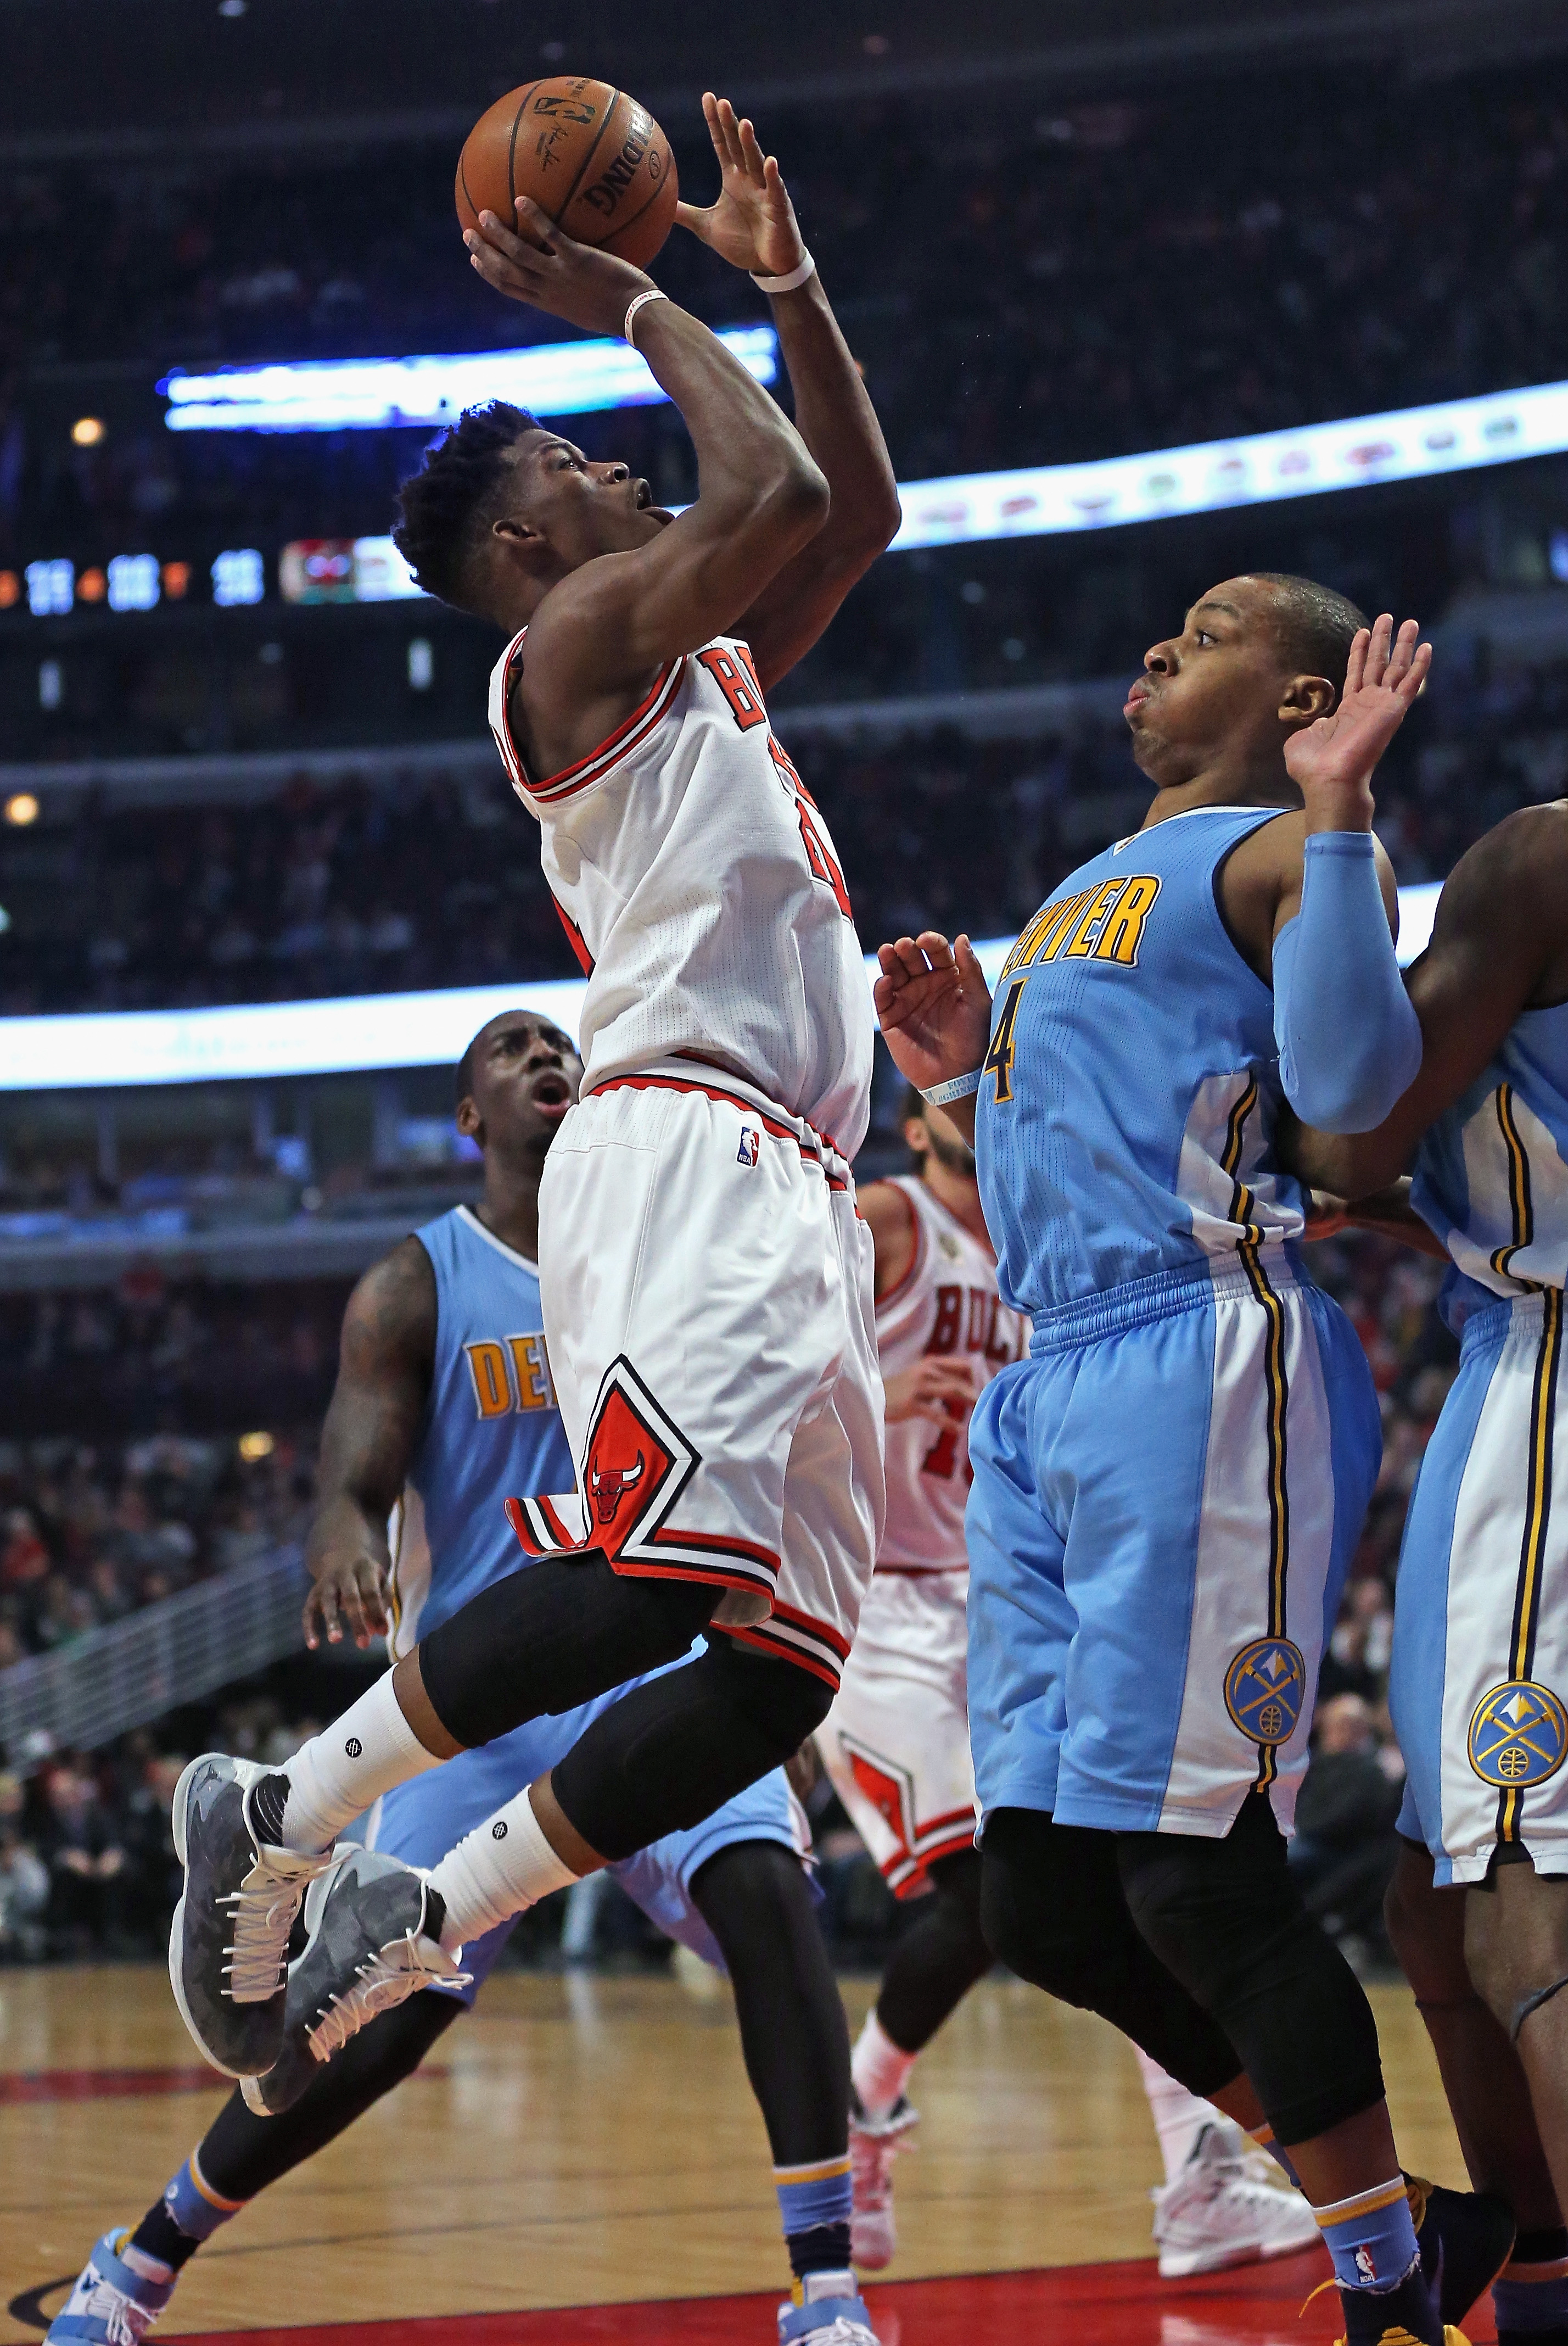 CHICAGO, IL - DECEMBER 02: Jimmy Butler #21 of the Chicago Bulls shoots over Randy Foye #4 of the Denver Nuggets at the United Center on December 2, 2015 in Chicago, Illinois. The Bulls defeated the Nuggets 99-90. Note to User: User expressly acknowledges